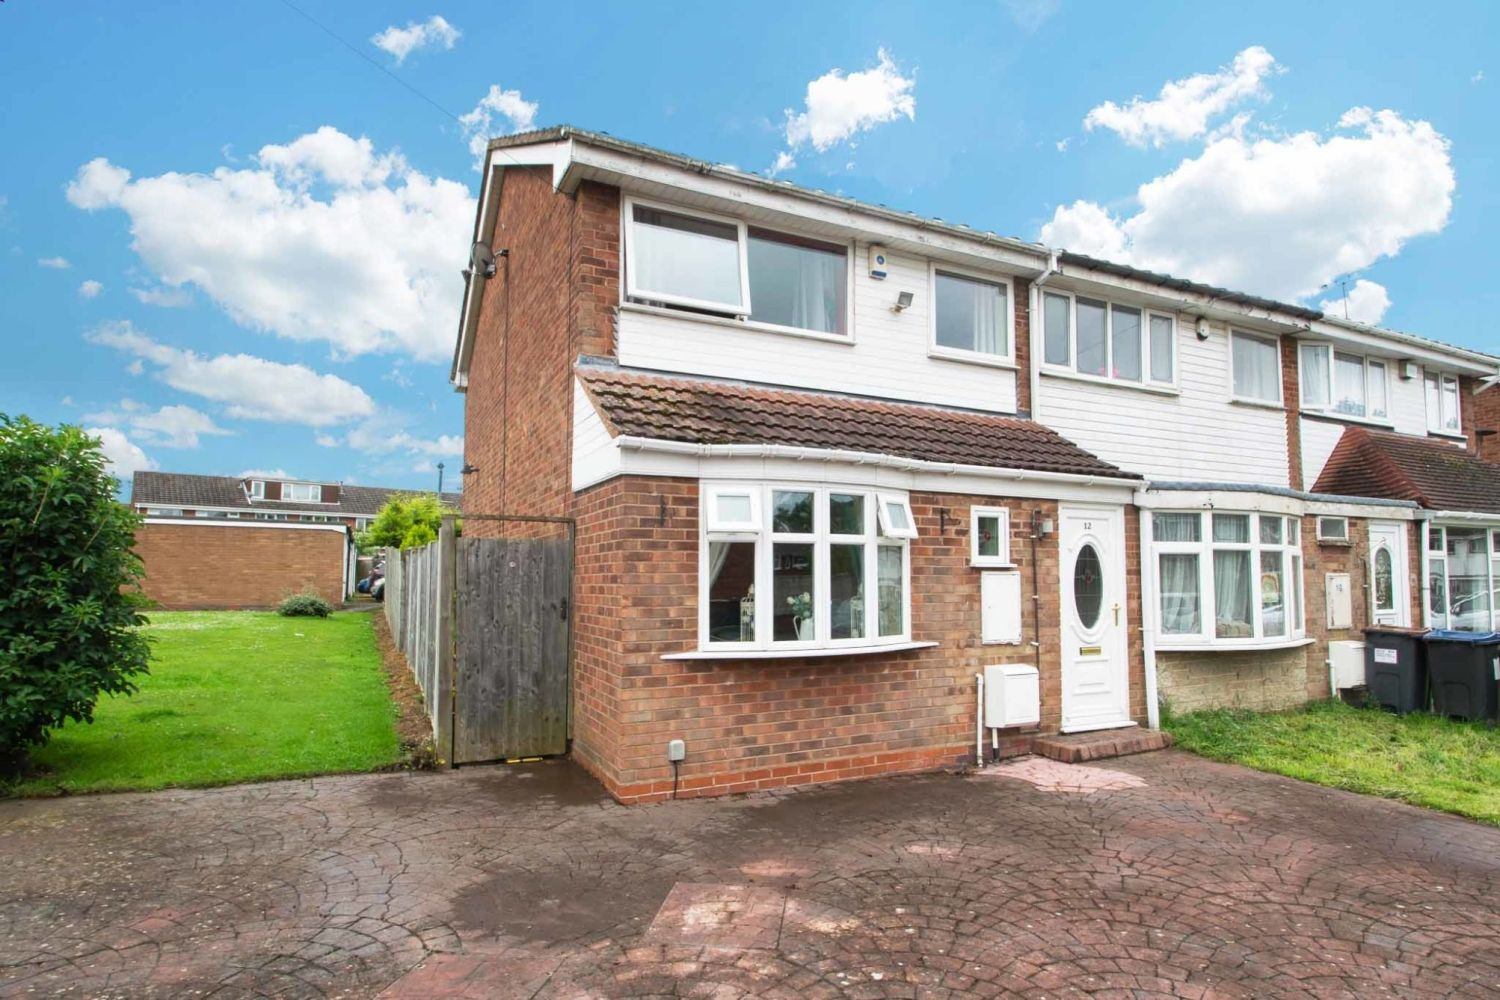 3 bed terraced for sale in Westcombe Grove, Birmingham - Property Image 1